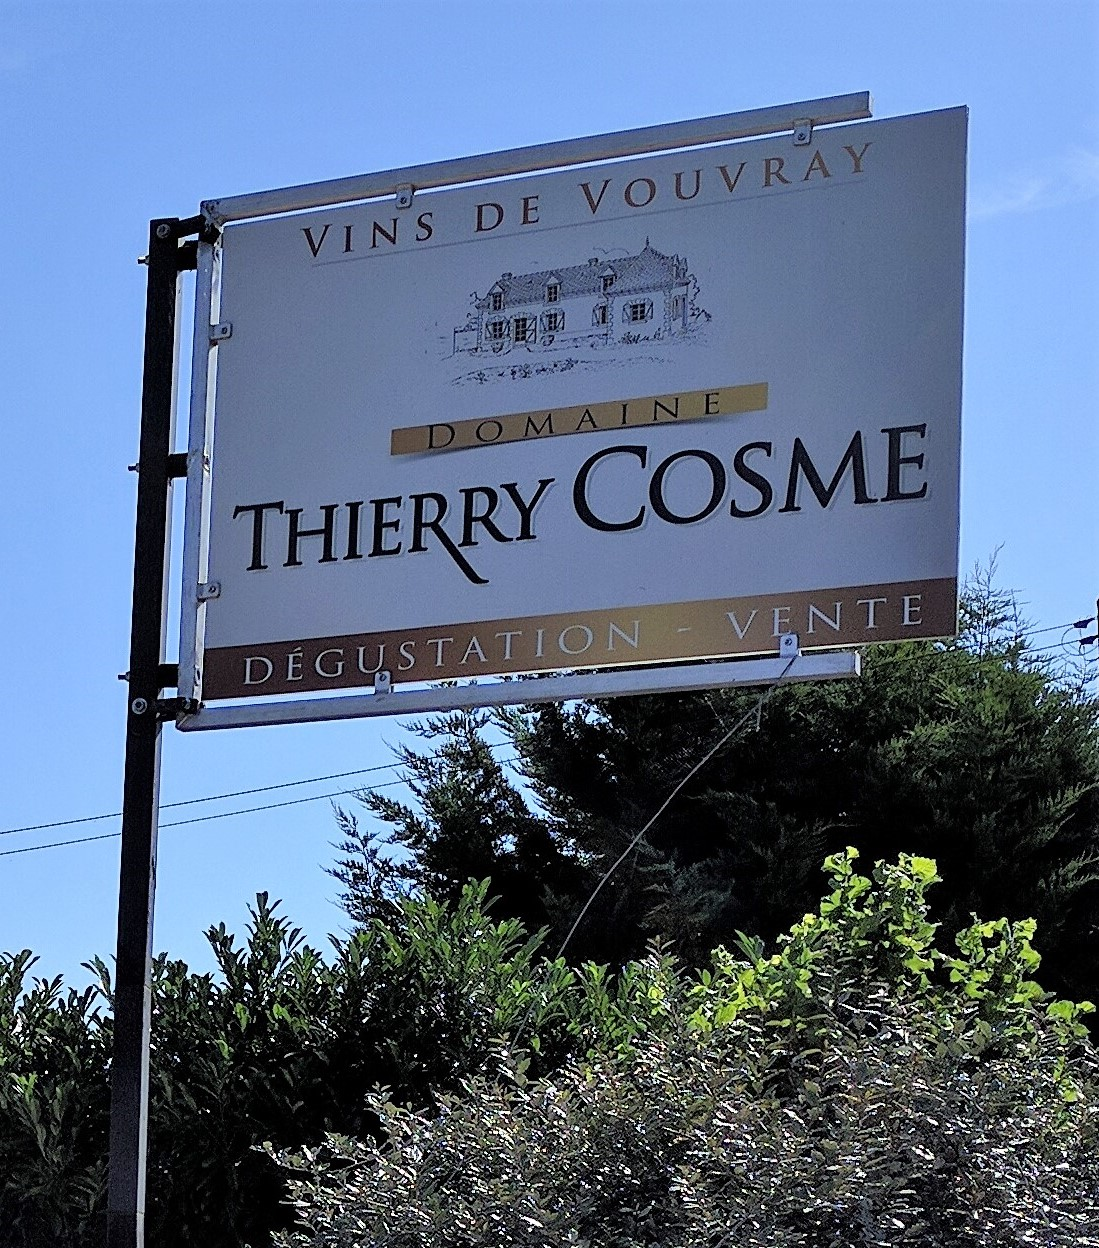 2. Domaine Thierry Cosme -